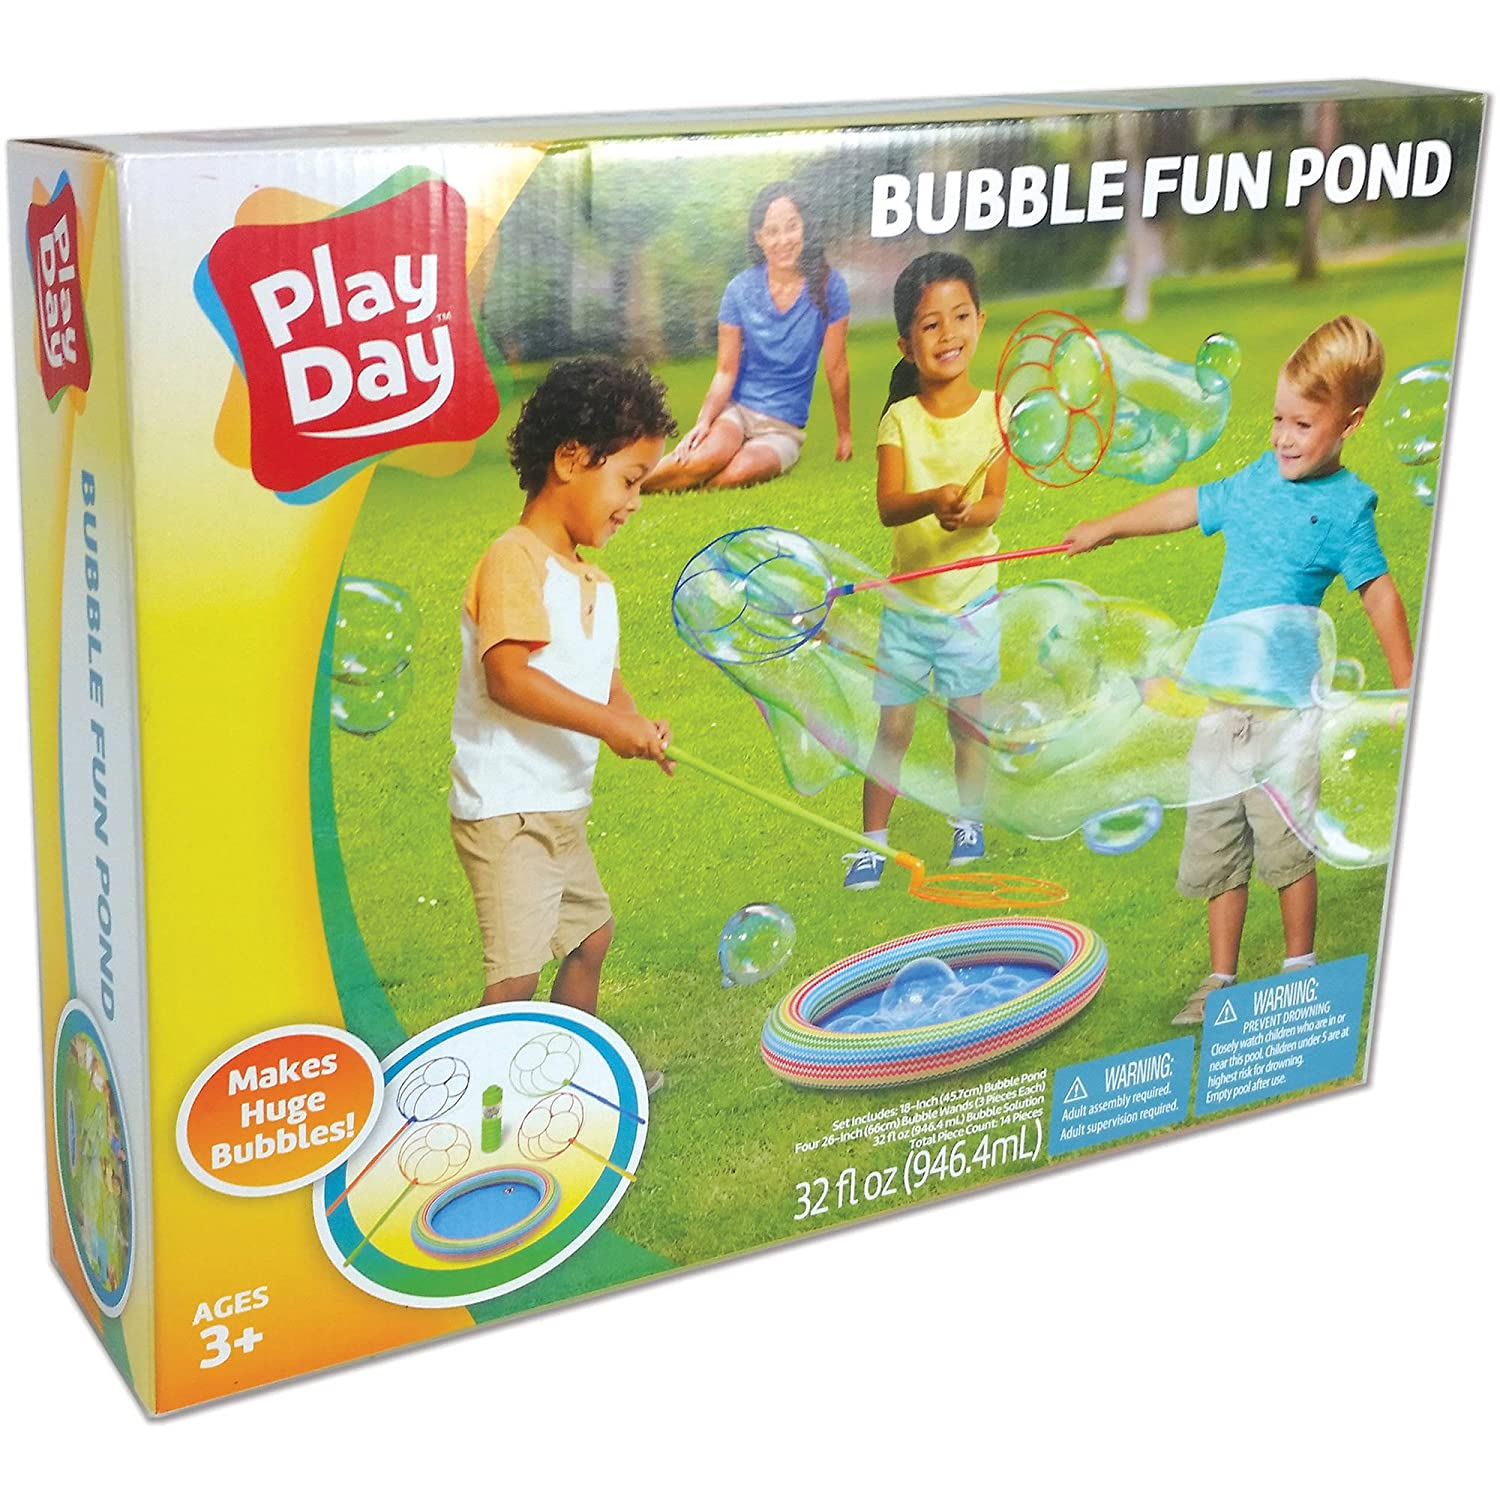 Bubble Fun Pond Outdoor Fun by Play Day